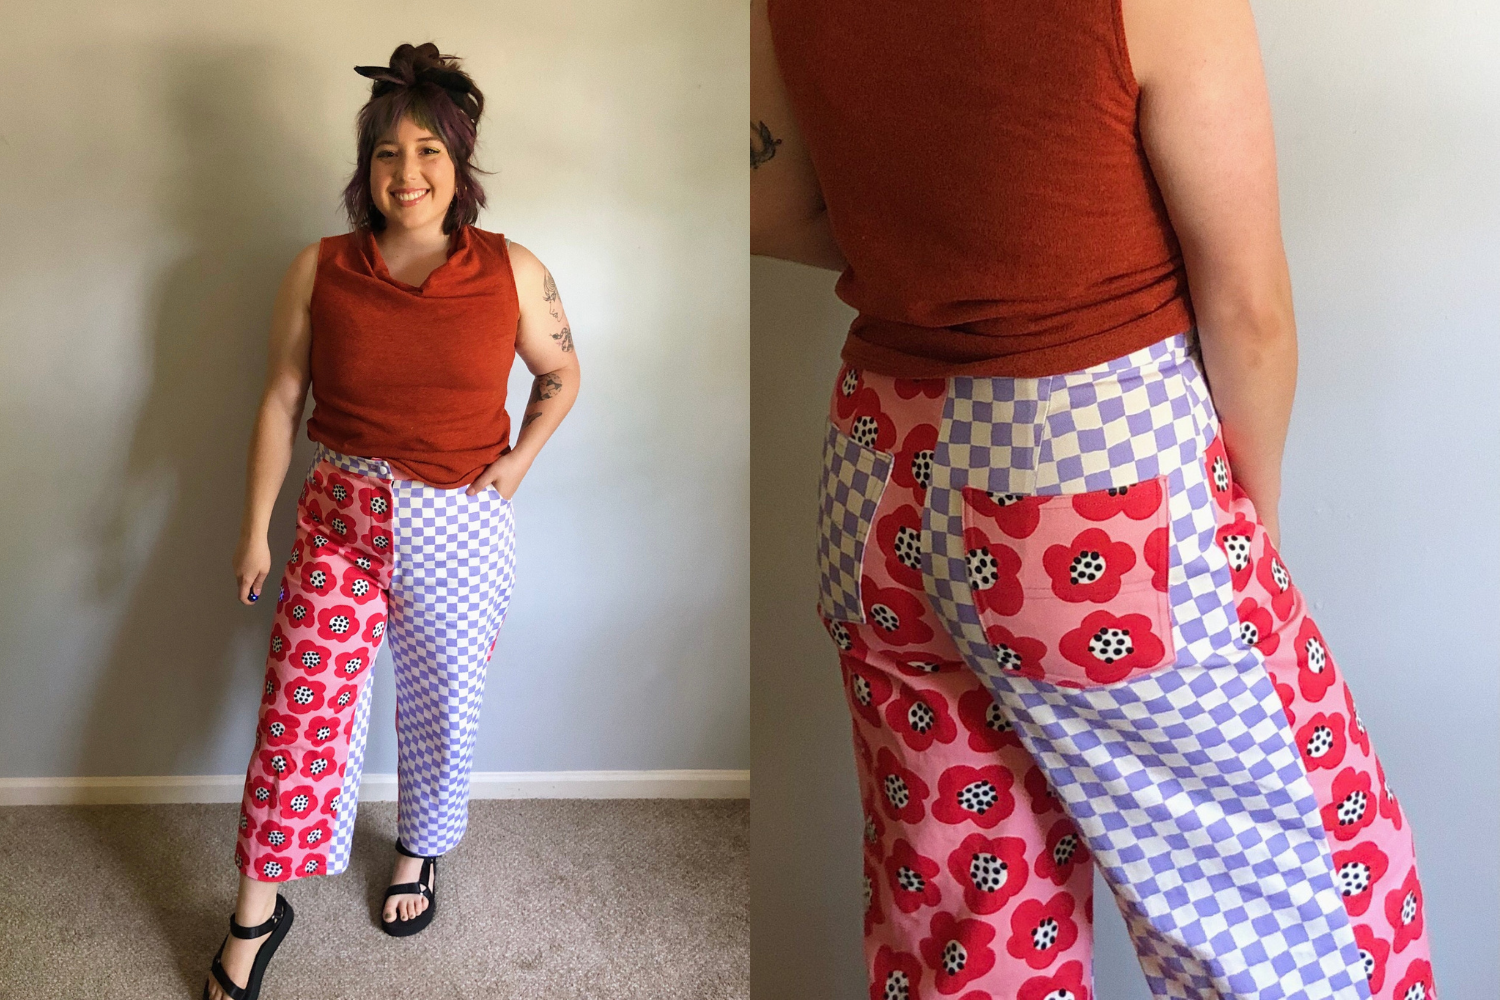 Wide-legged pants with checkered and floral patterns